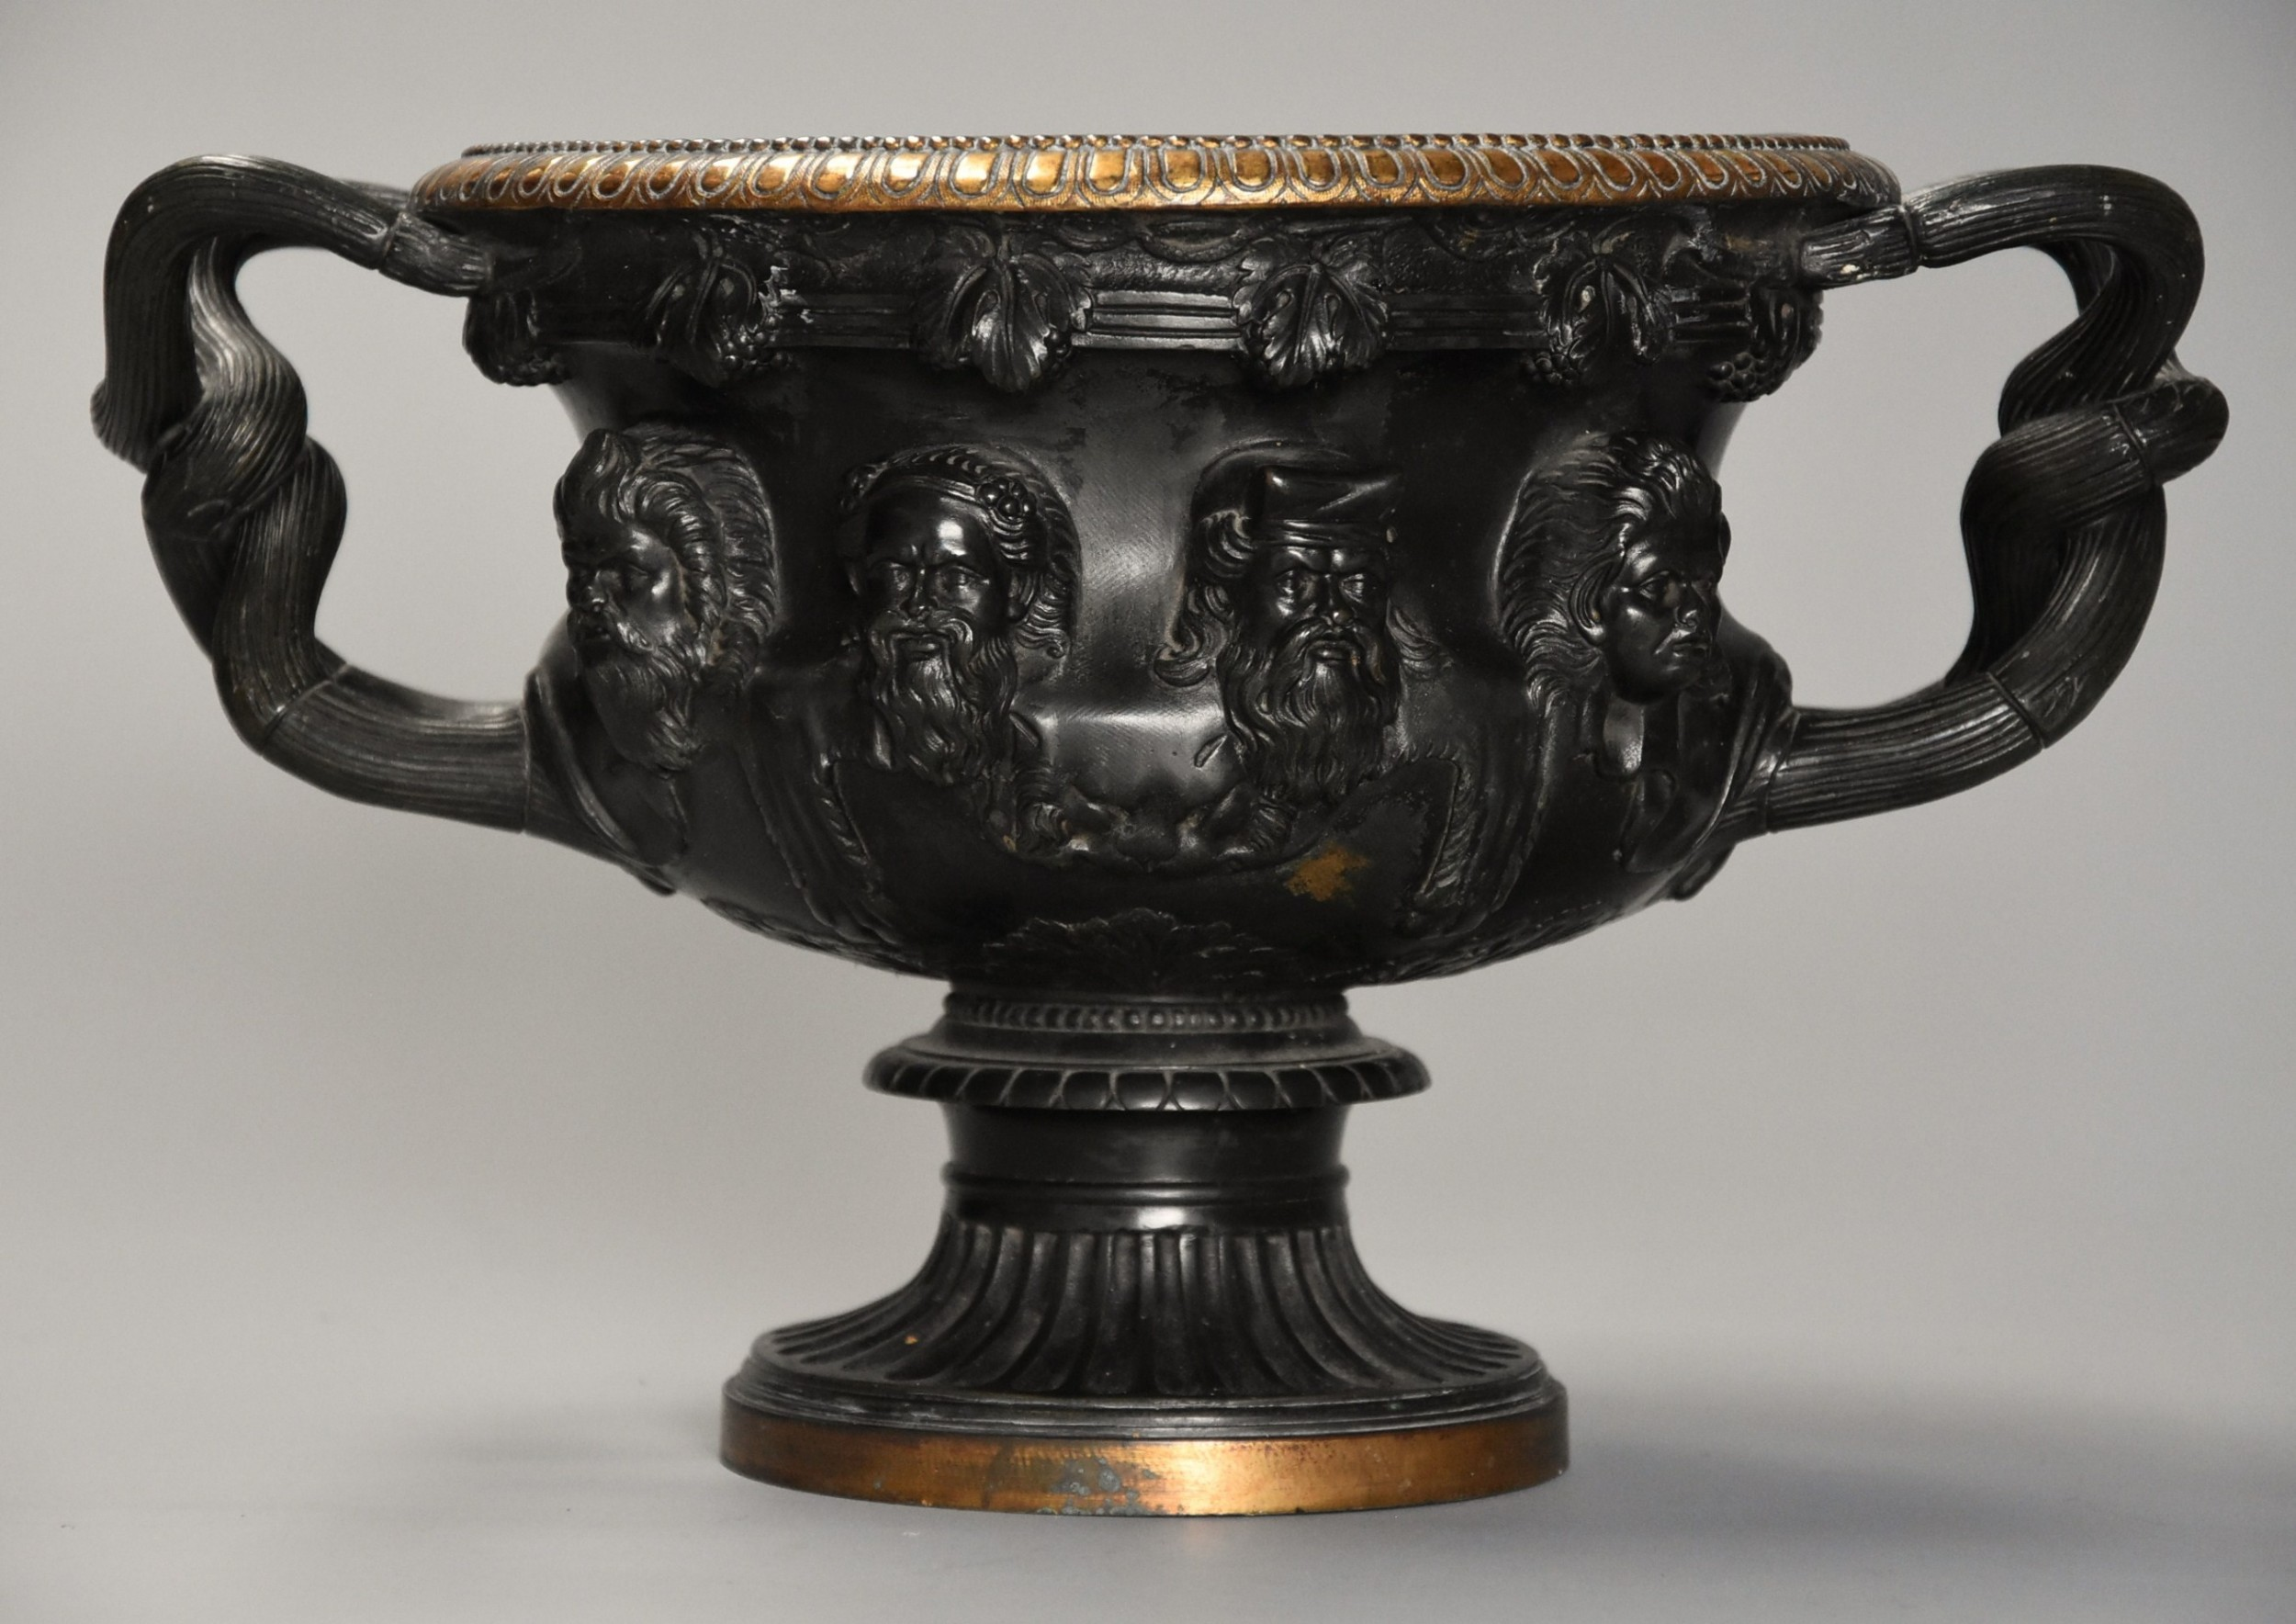 good quality 19th century grand tour bronze reduction of 'the warwick vase' after the antique